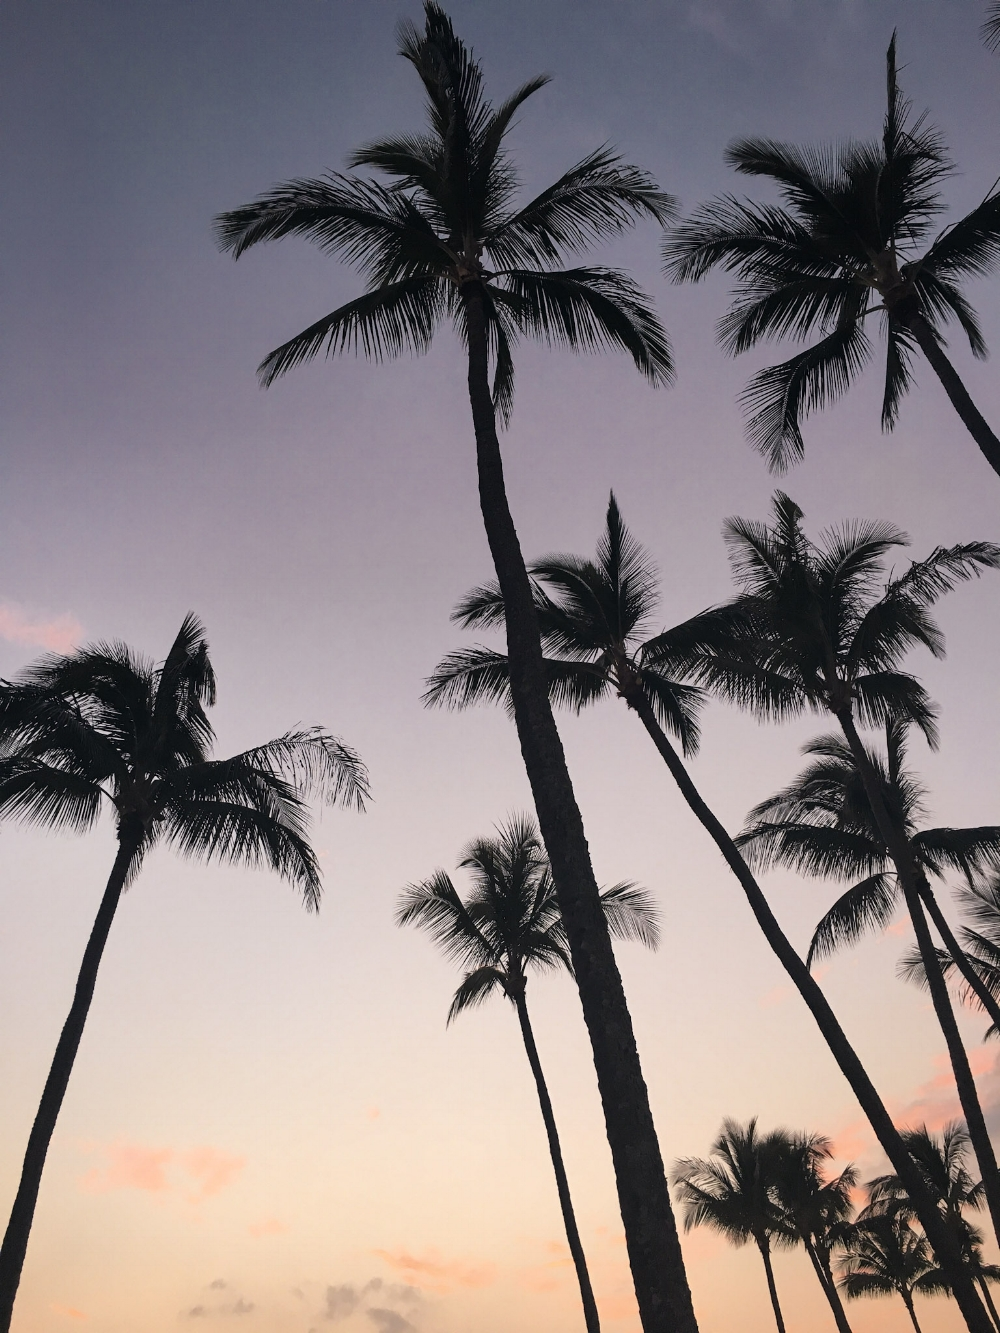 curio.trips.hawaii.palm.sunset.jpg